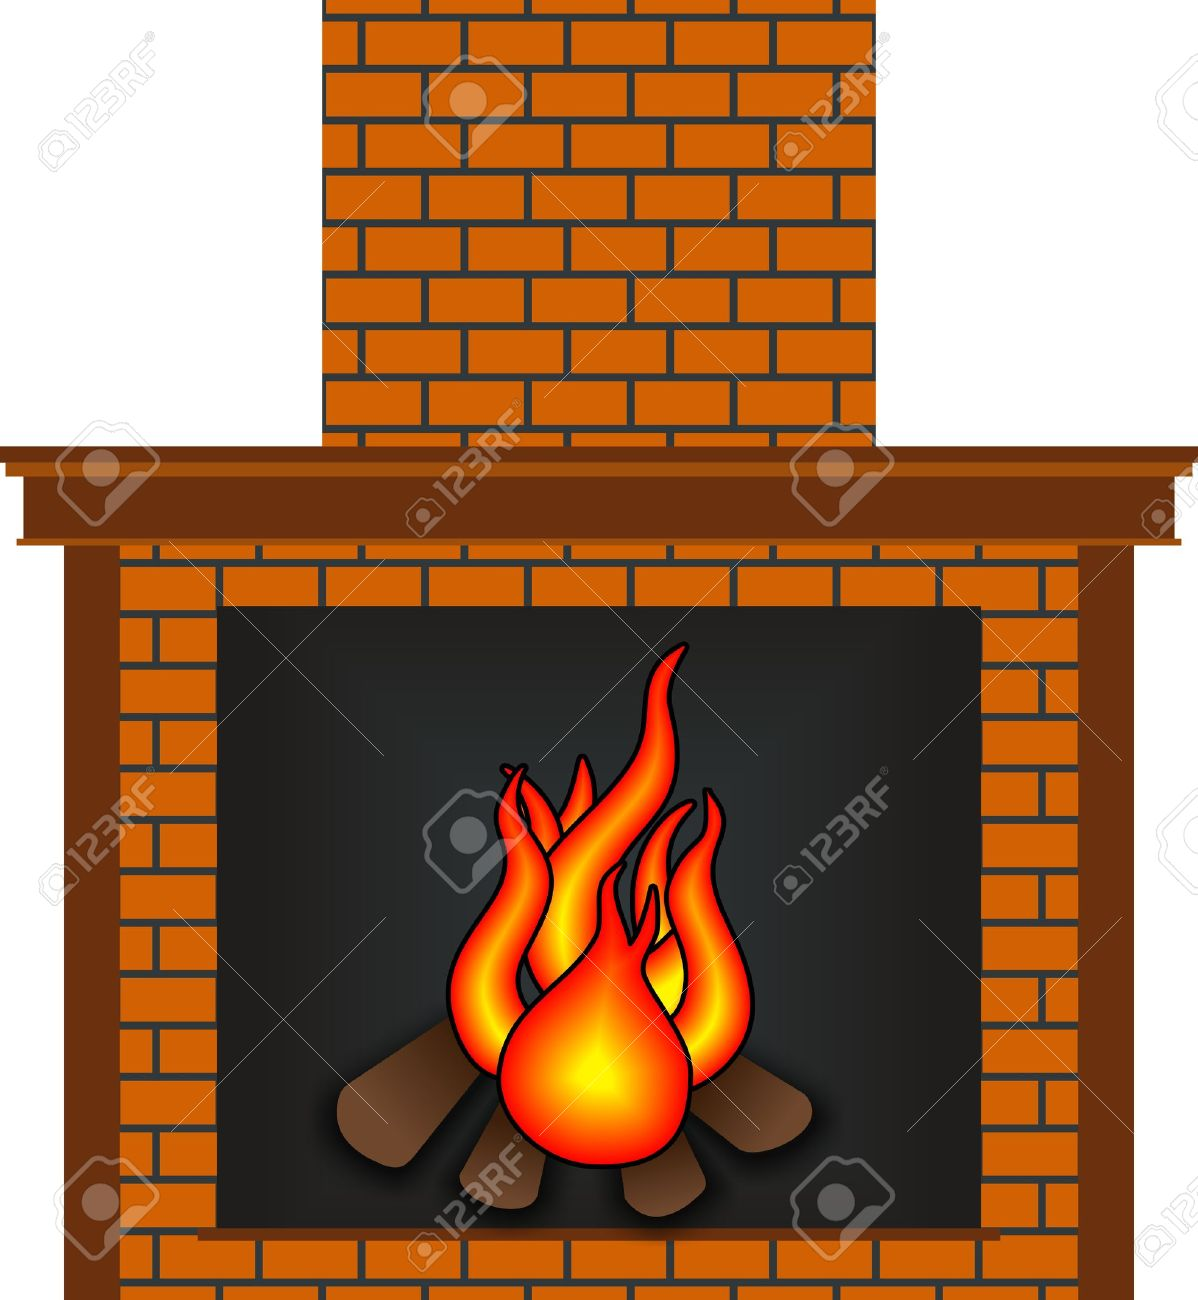 11,220 Fireplace Stock Vector Illustration And Royalty Free.